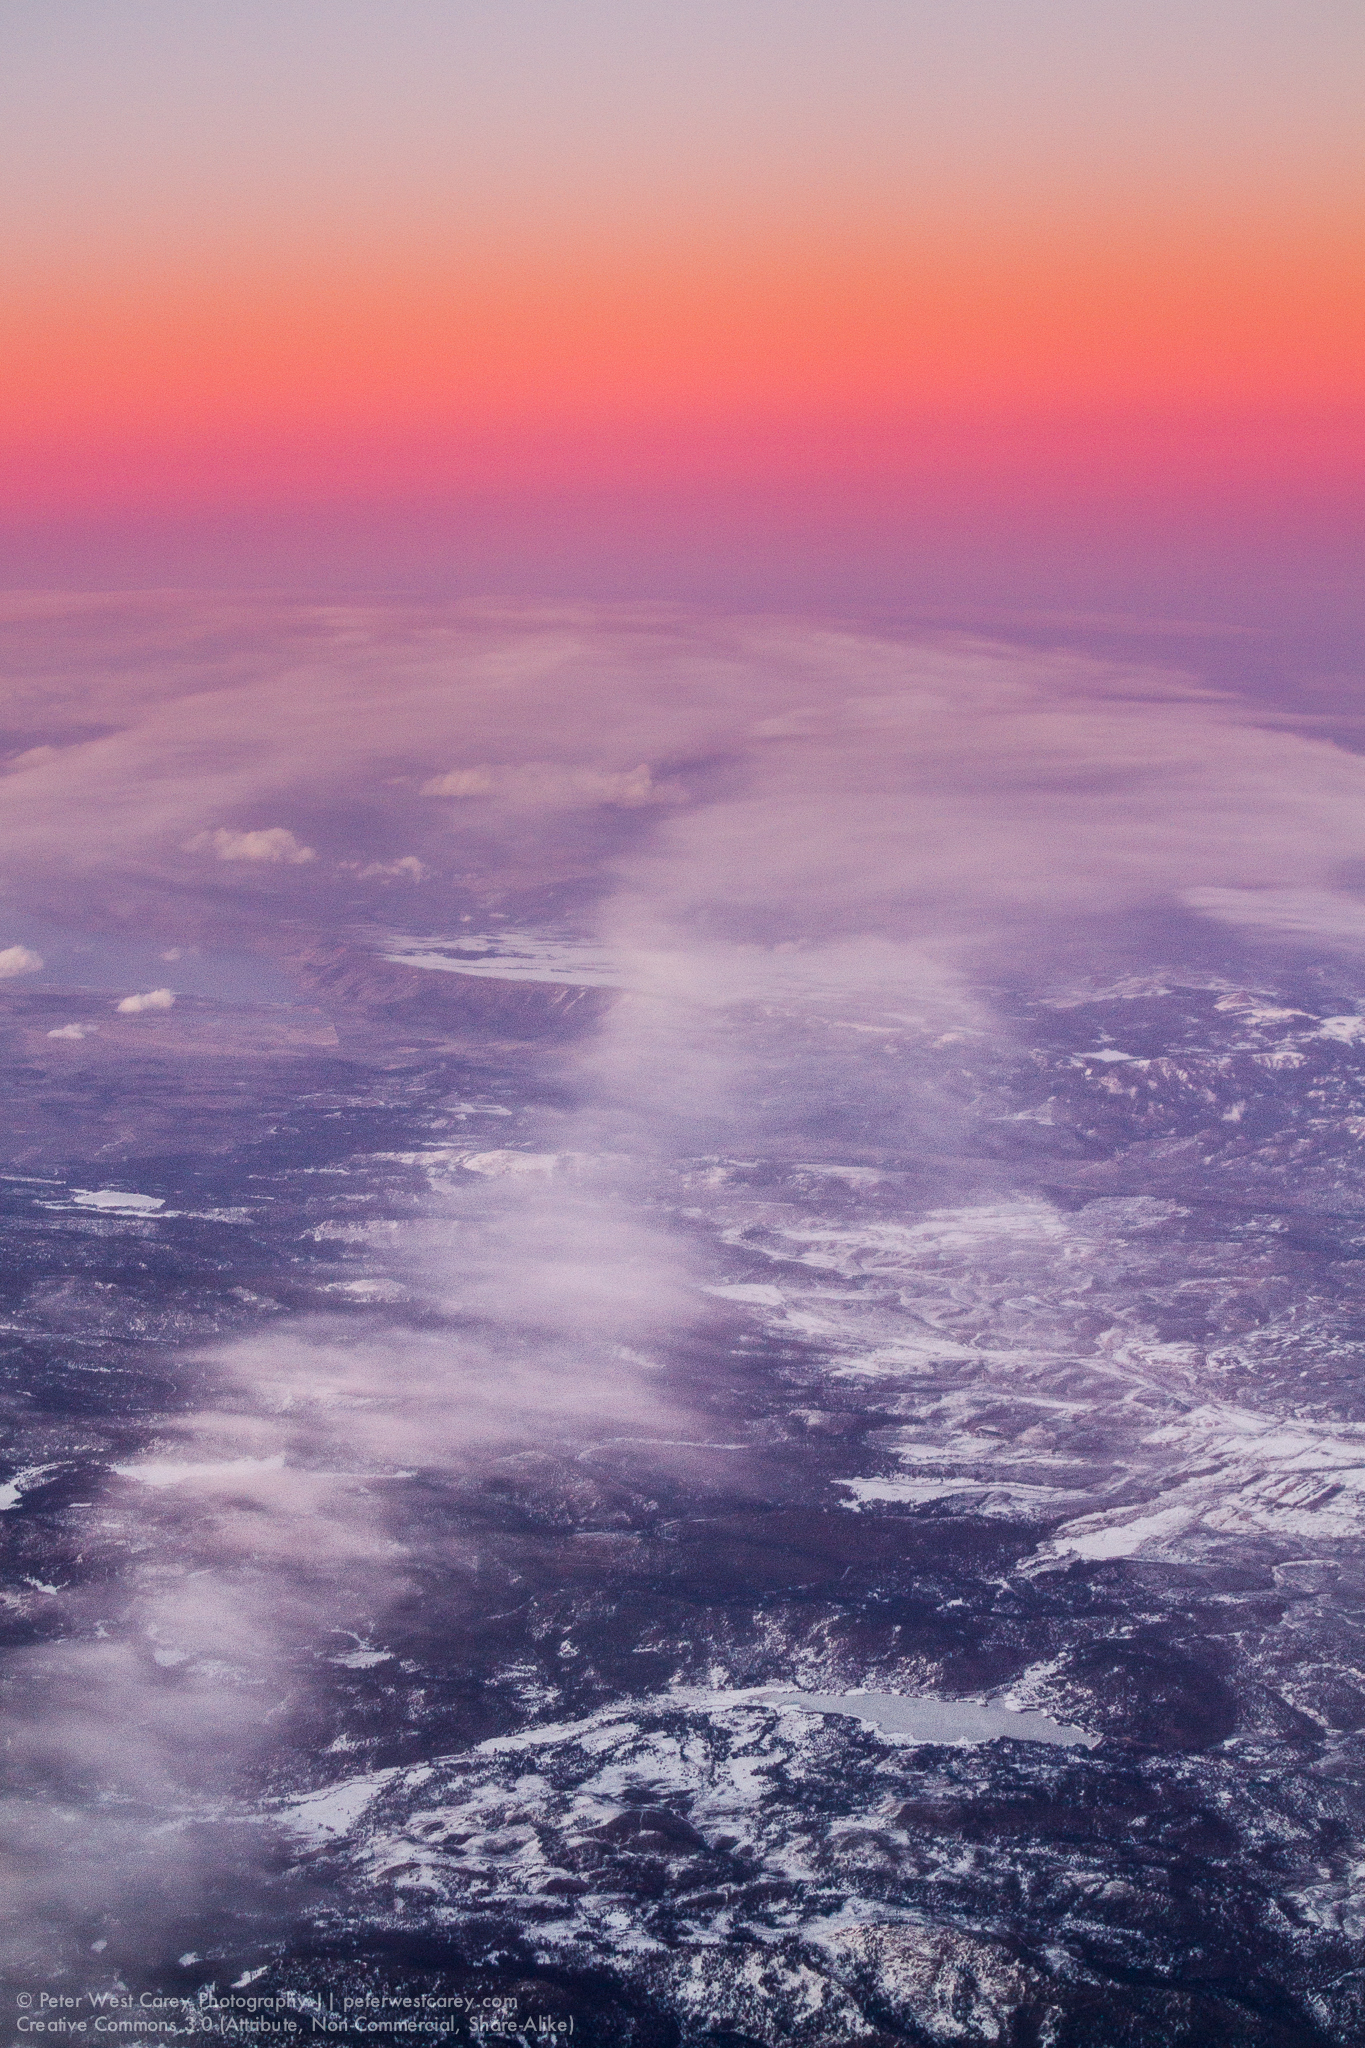 After Sunset From 39,000', California, USA, North America